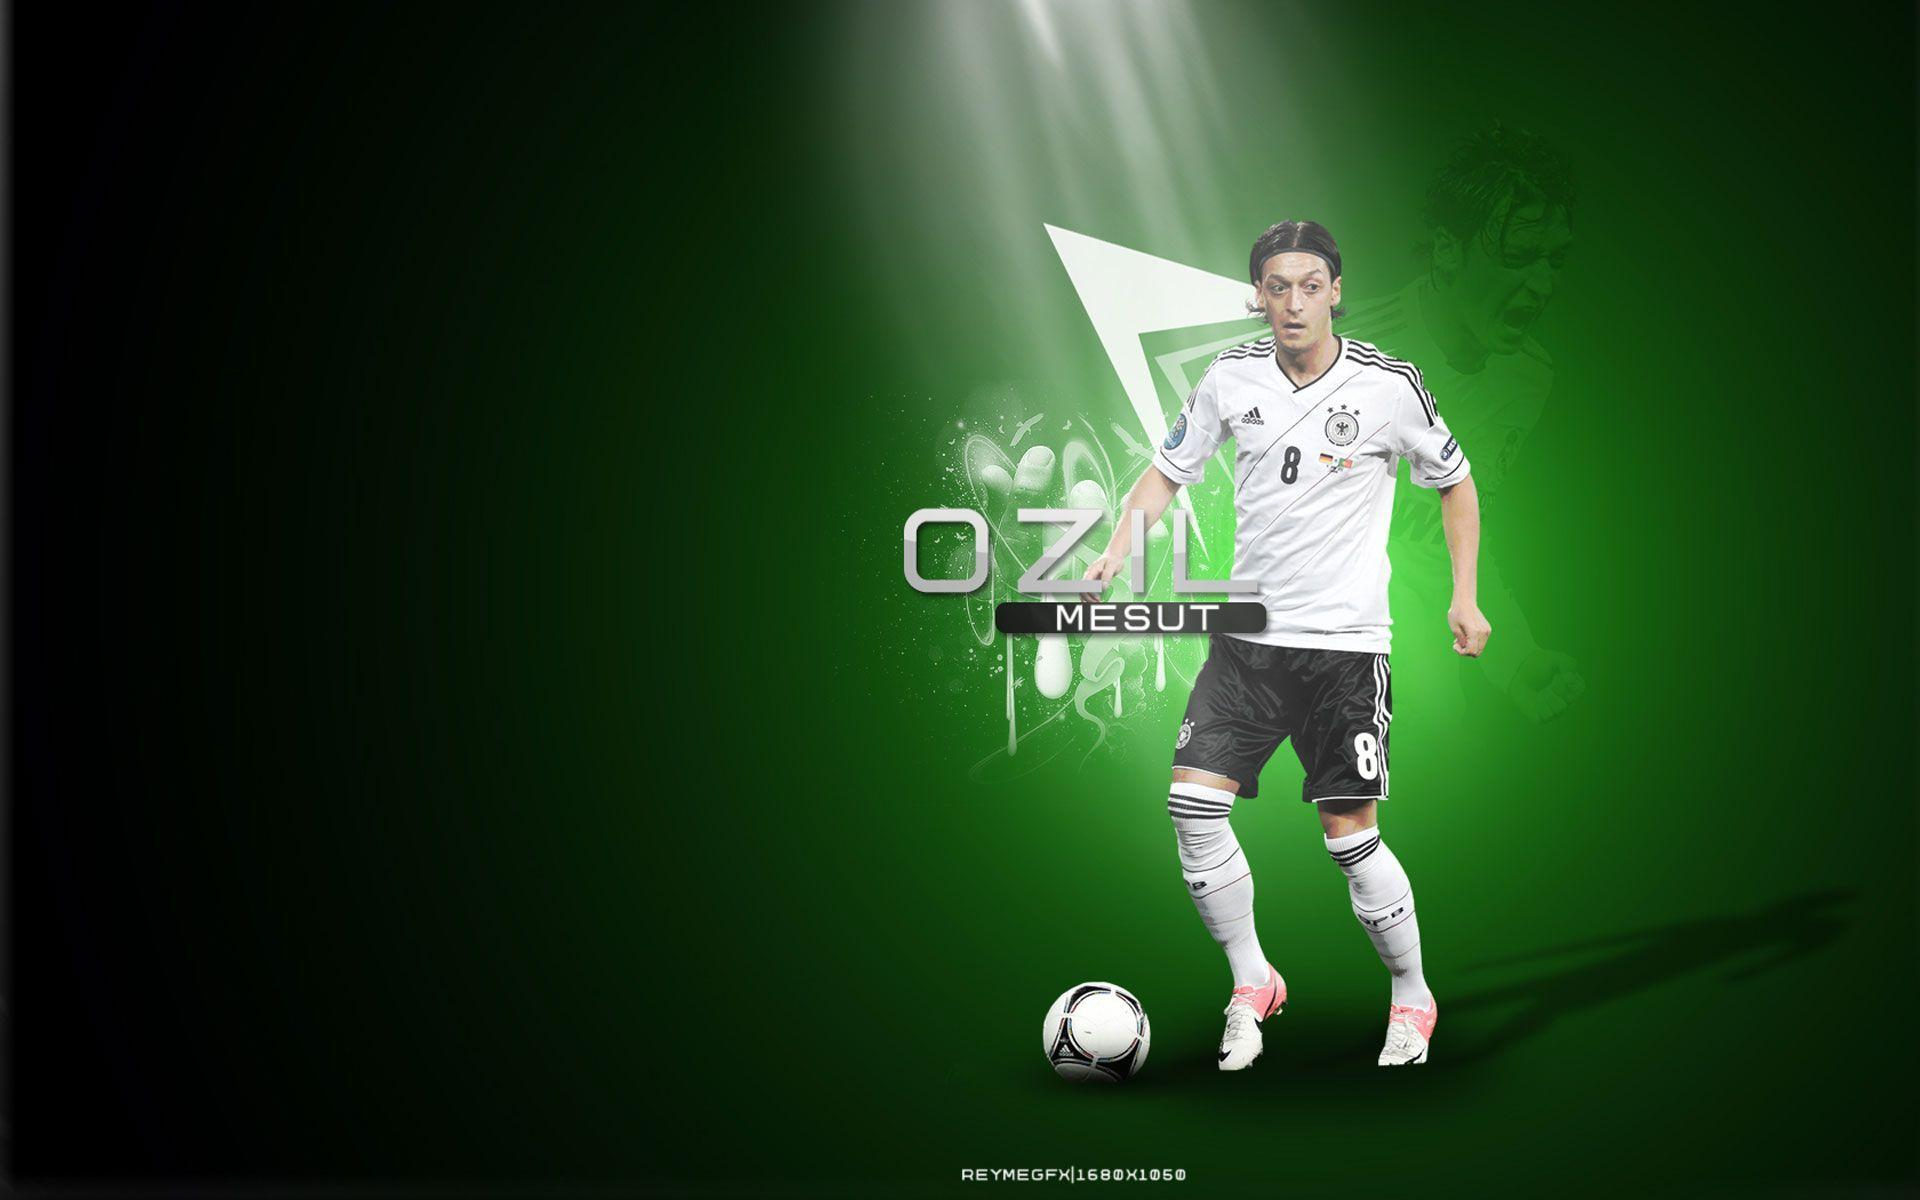 Mesut Ozil Wallpapers Hd Arsenal Mesut Ozil Wallpapers Wallpaper Cave